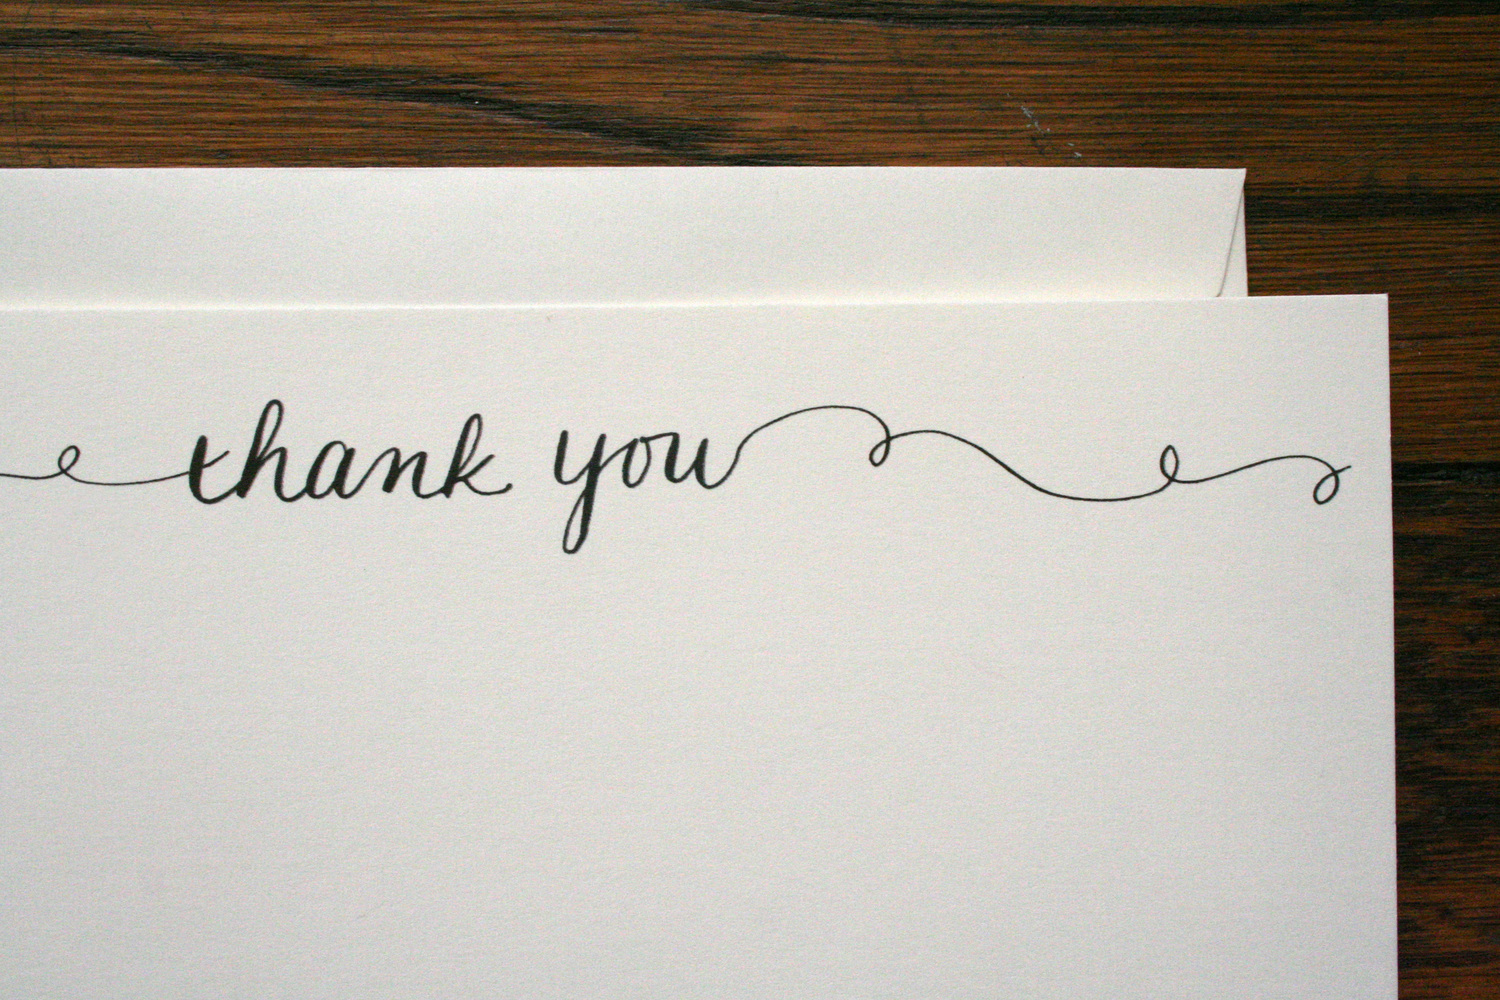 thank you stationery set of 12 cards envelopes paper by jlee